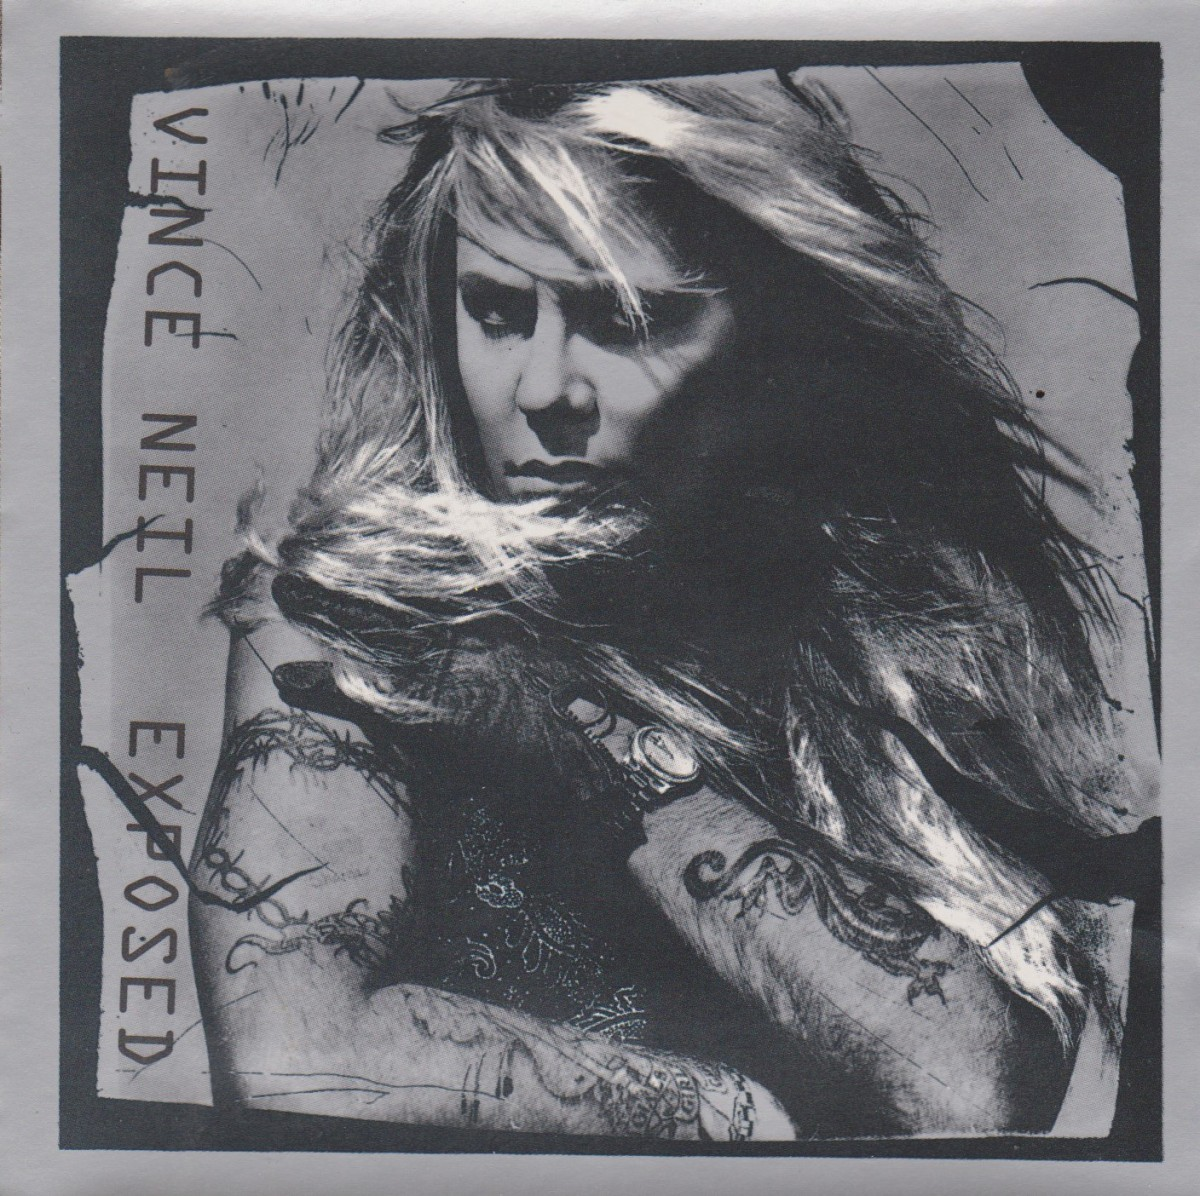 REVIEW:  Vince Neil - Exposed (1993)